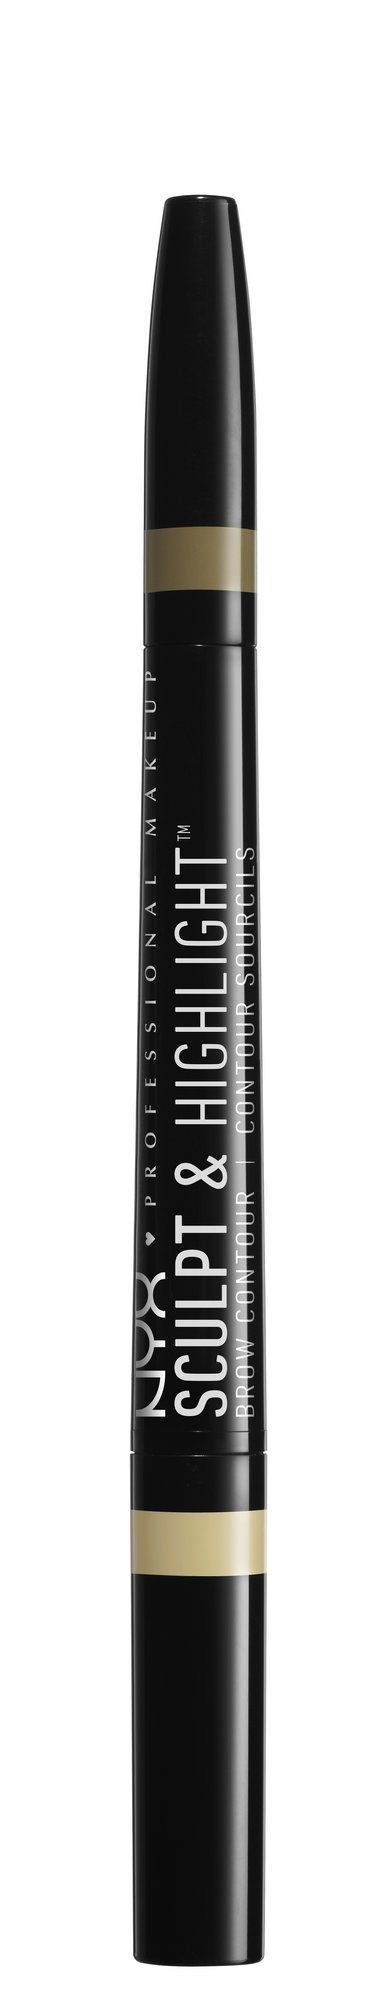 NYX Professional Makeup Sculpt & Highlight Brow Contour, Blonde. A dual sided brow and highlight pencil ideal for defining, filling and creating the illusion of lifted eyebrows. The propel/repel design means you never have to sharpen either side. The highlight side boosts your natural arch, while the brow side is perfect for defining and filling in brow color. Formulated with castor seed oil, this dynamic eyebrow pencil also helps the skin feel soft and smooth. Lightly fill in and define...